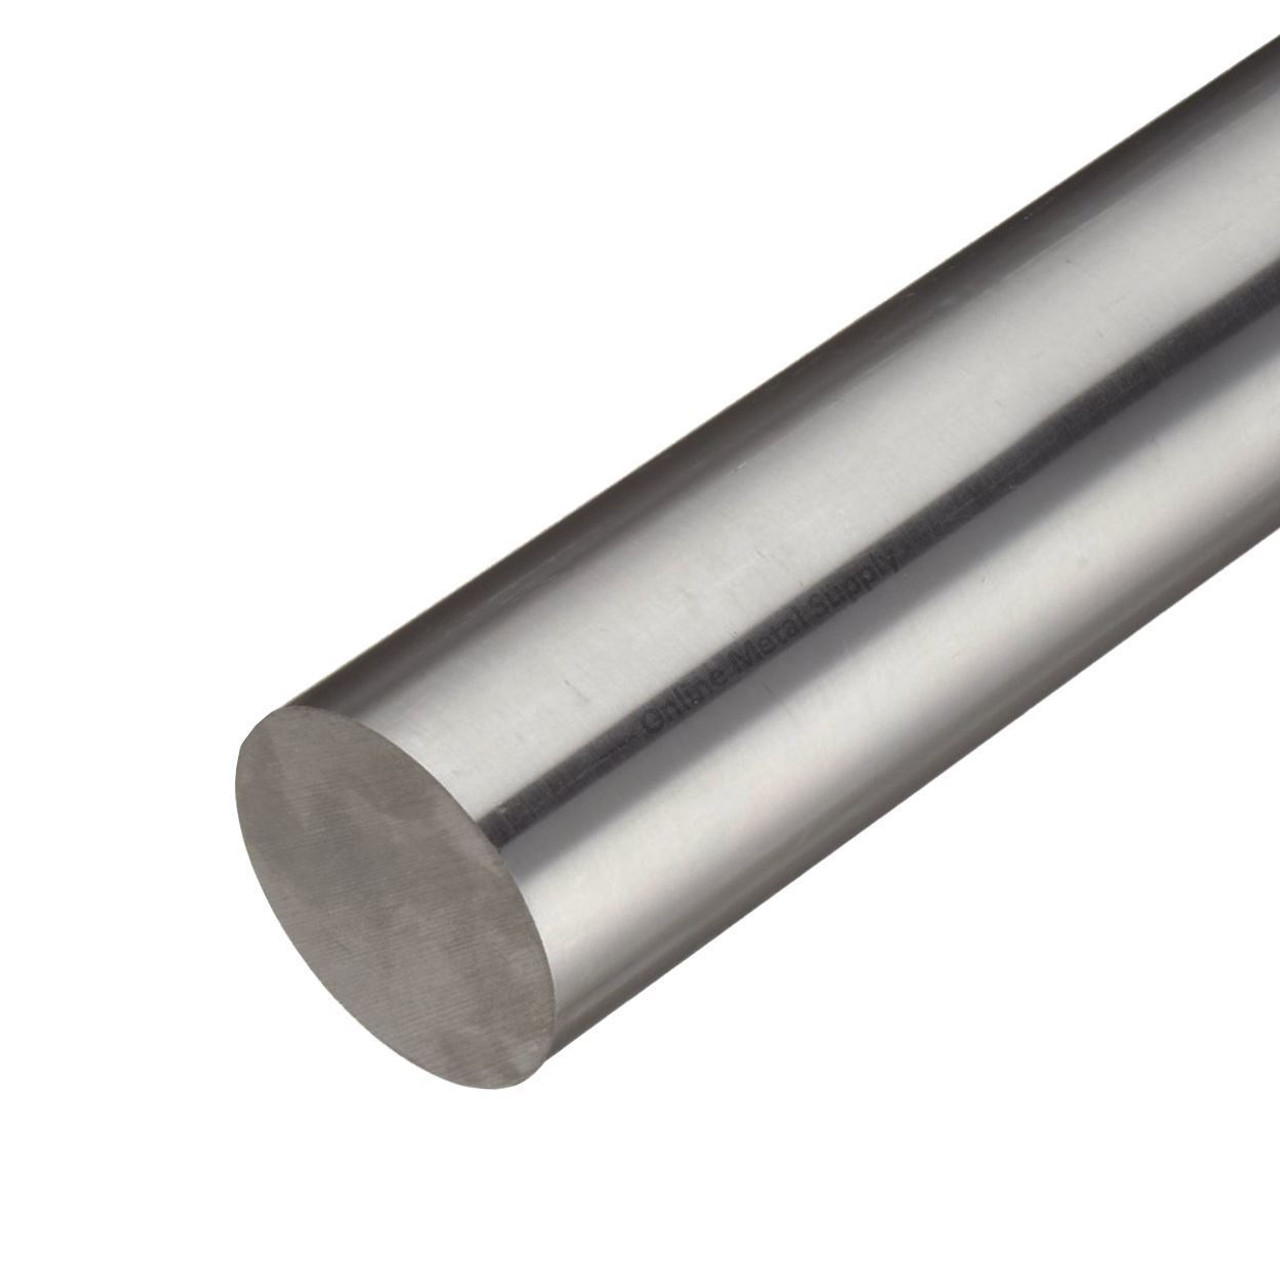 1.125 (1-1/8 inch) x 12 inches, 15-5 Cond A CF Stainless Steel Round Rod